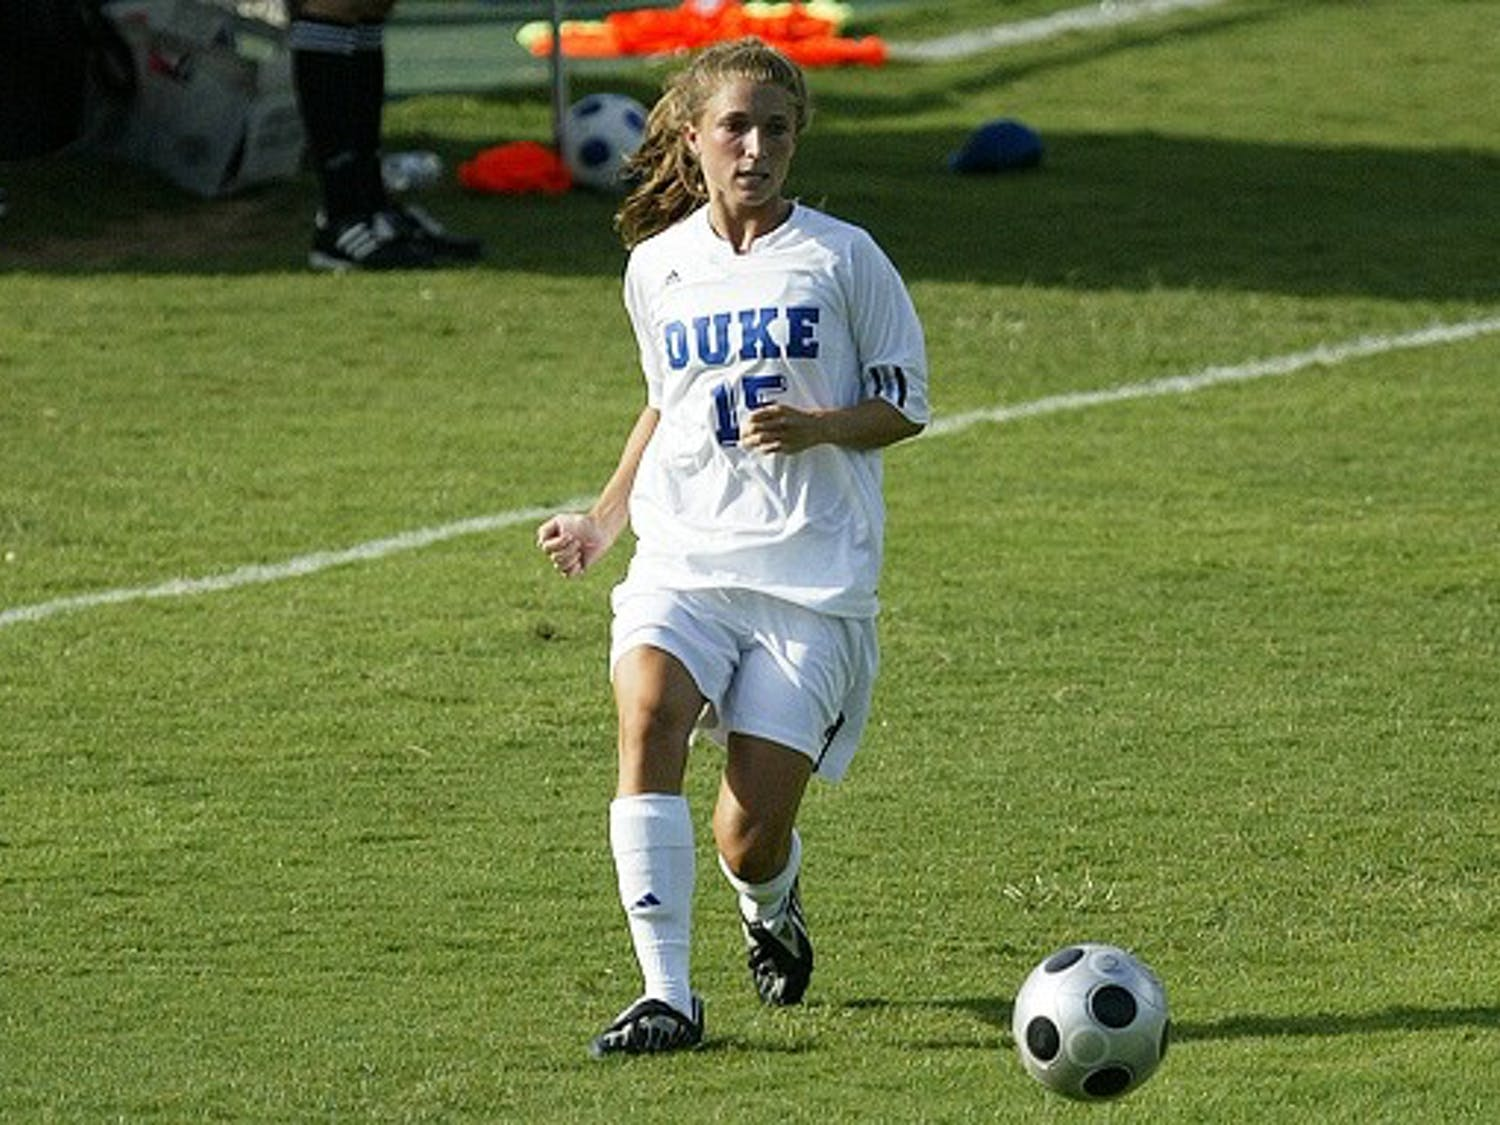 Molly Lester and the rest of the rejuvenated Blue Devils face Missouri and Stanford in Chapel Hill this weekend.